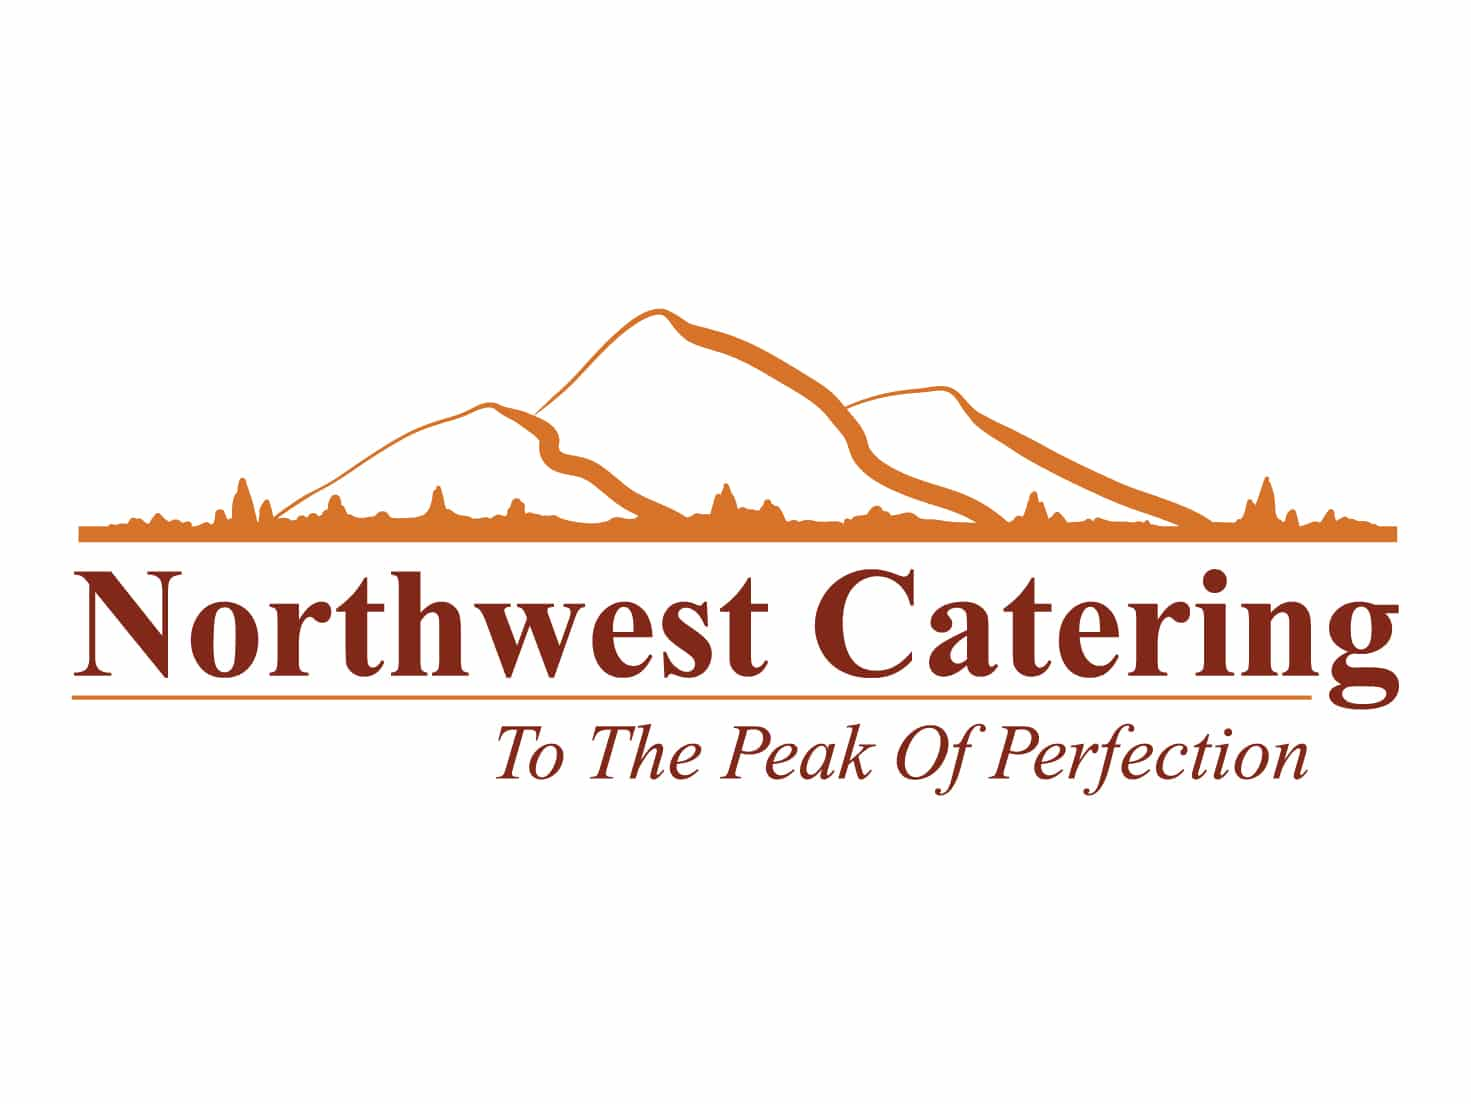 Northwest Catering